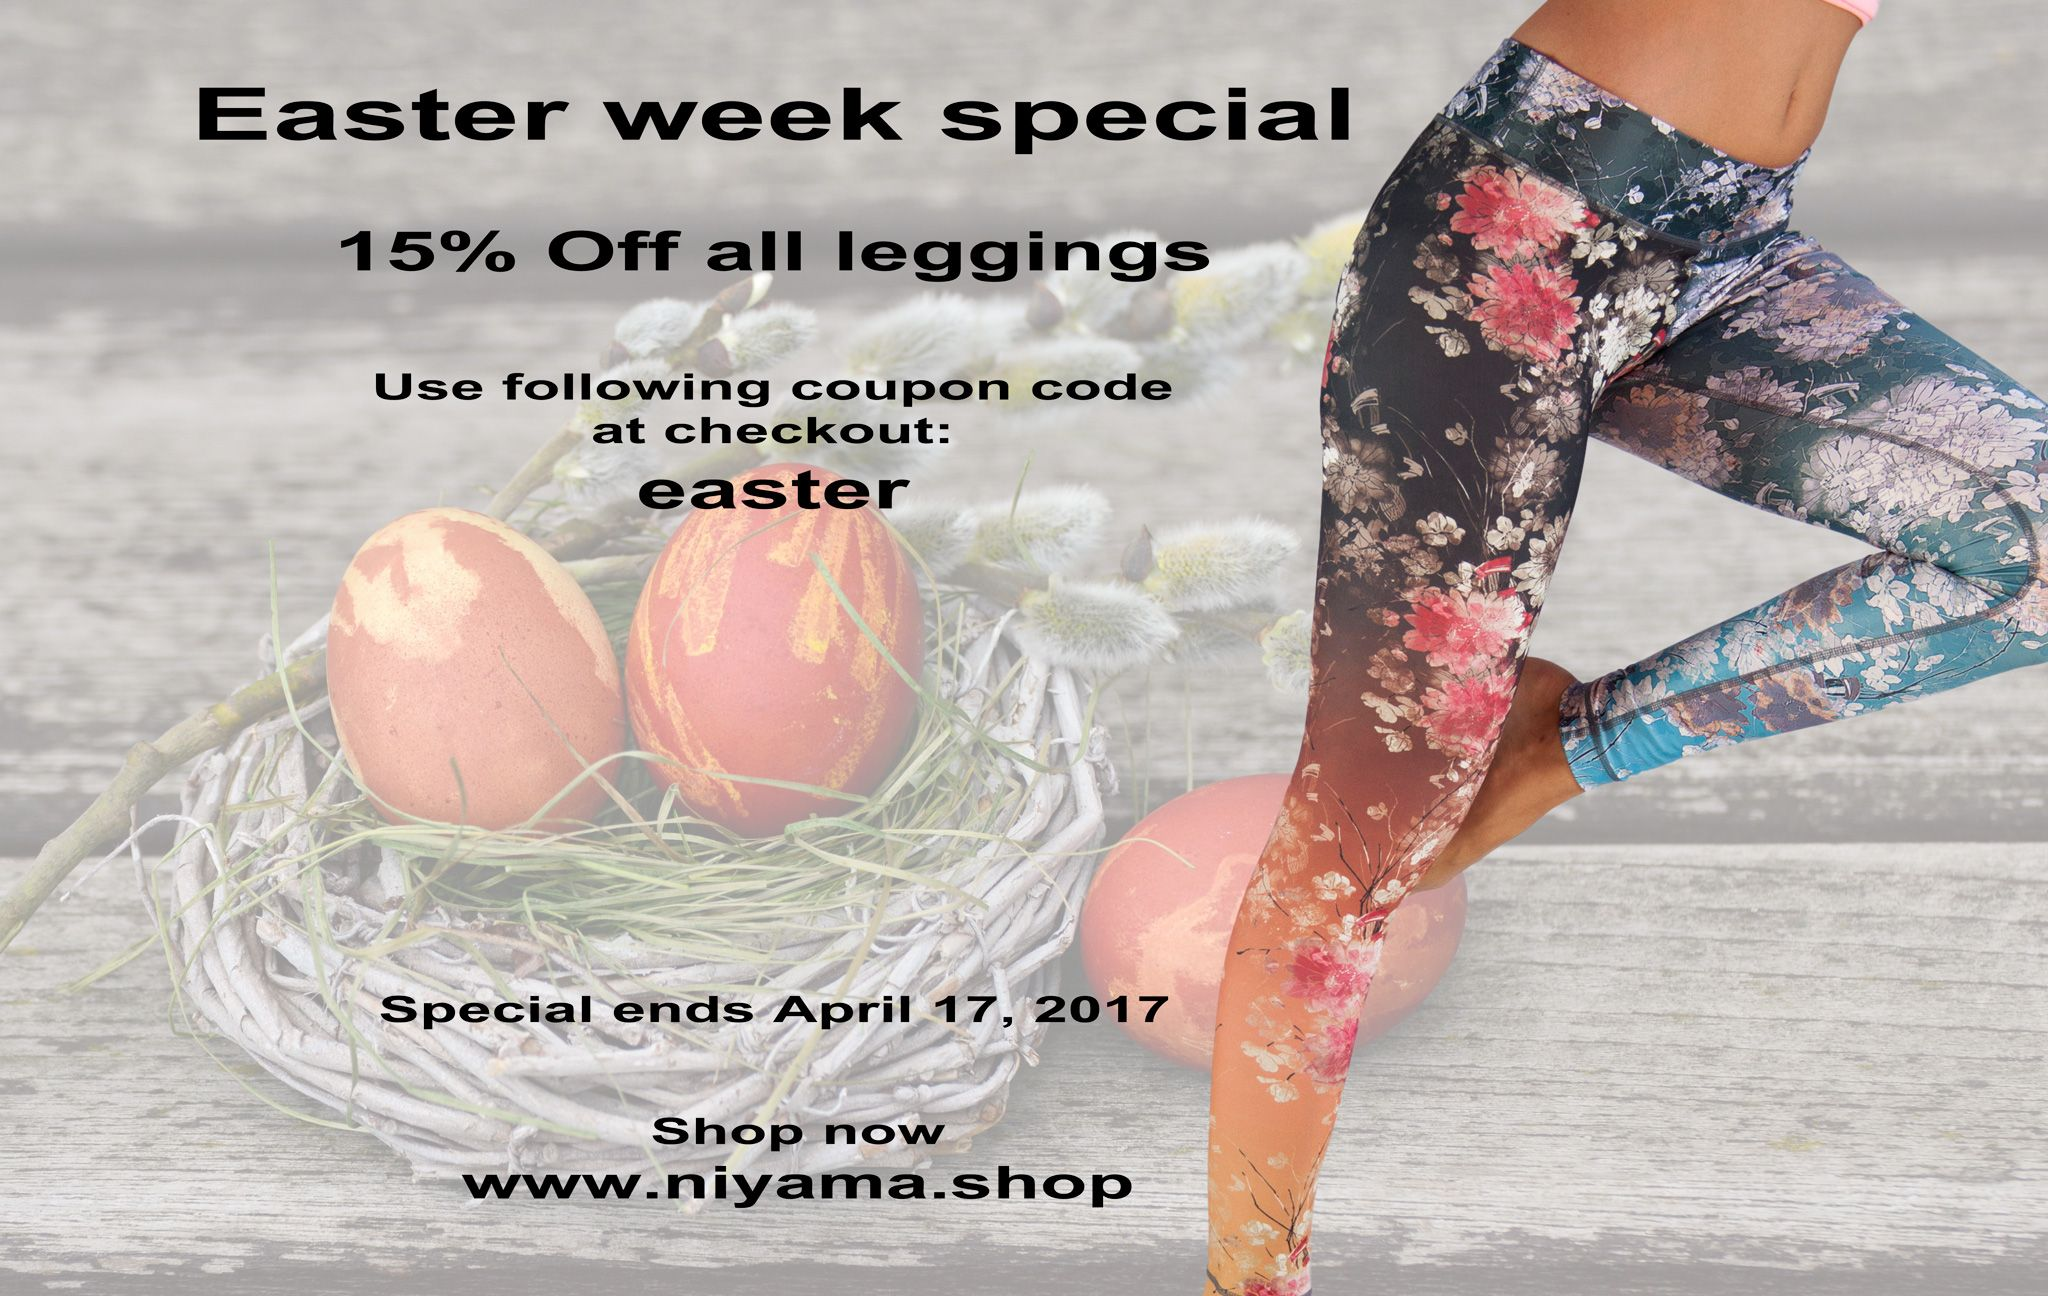 Easter week special: 15% Off all leggings  Use following coupon code at checkout: easter  Special ends April 17,  2017.